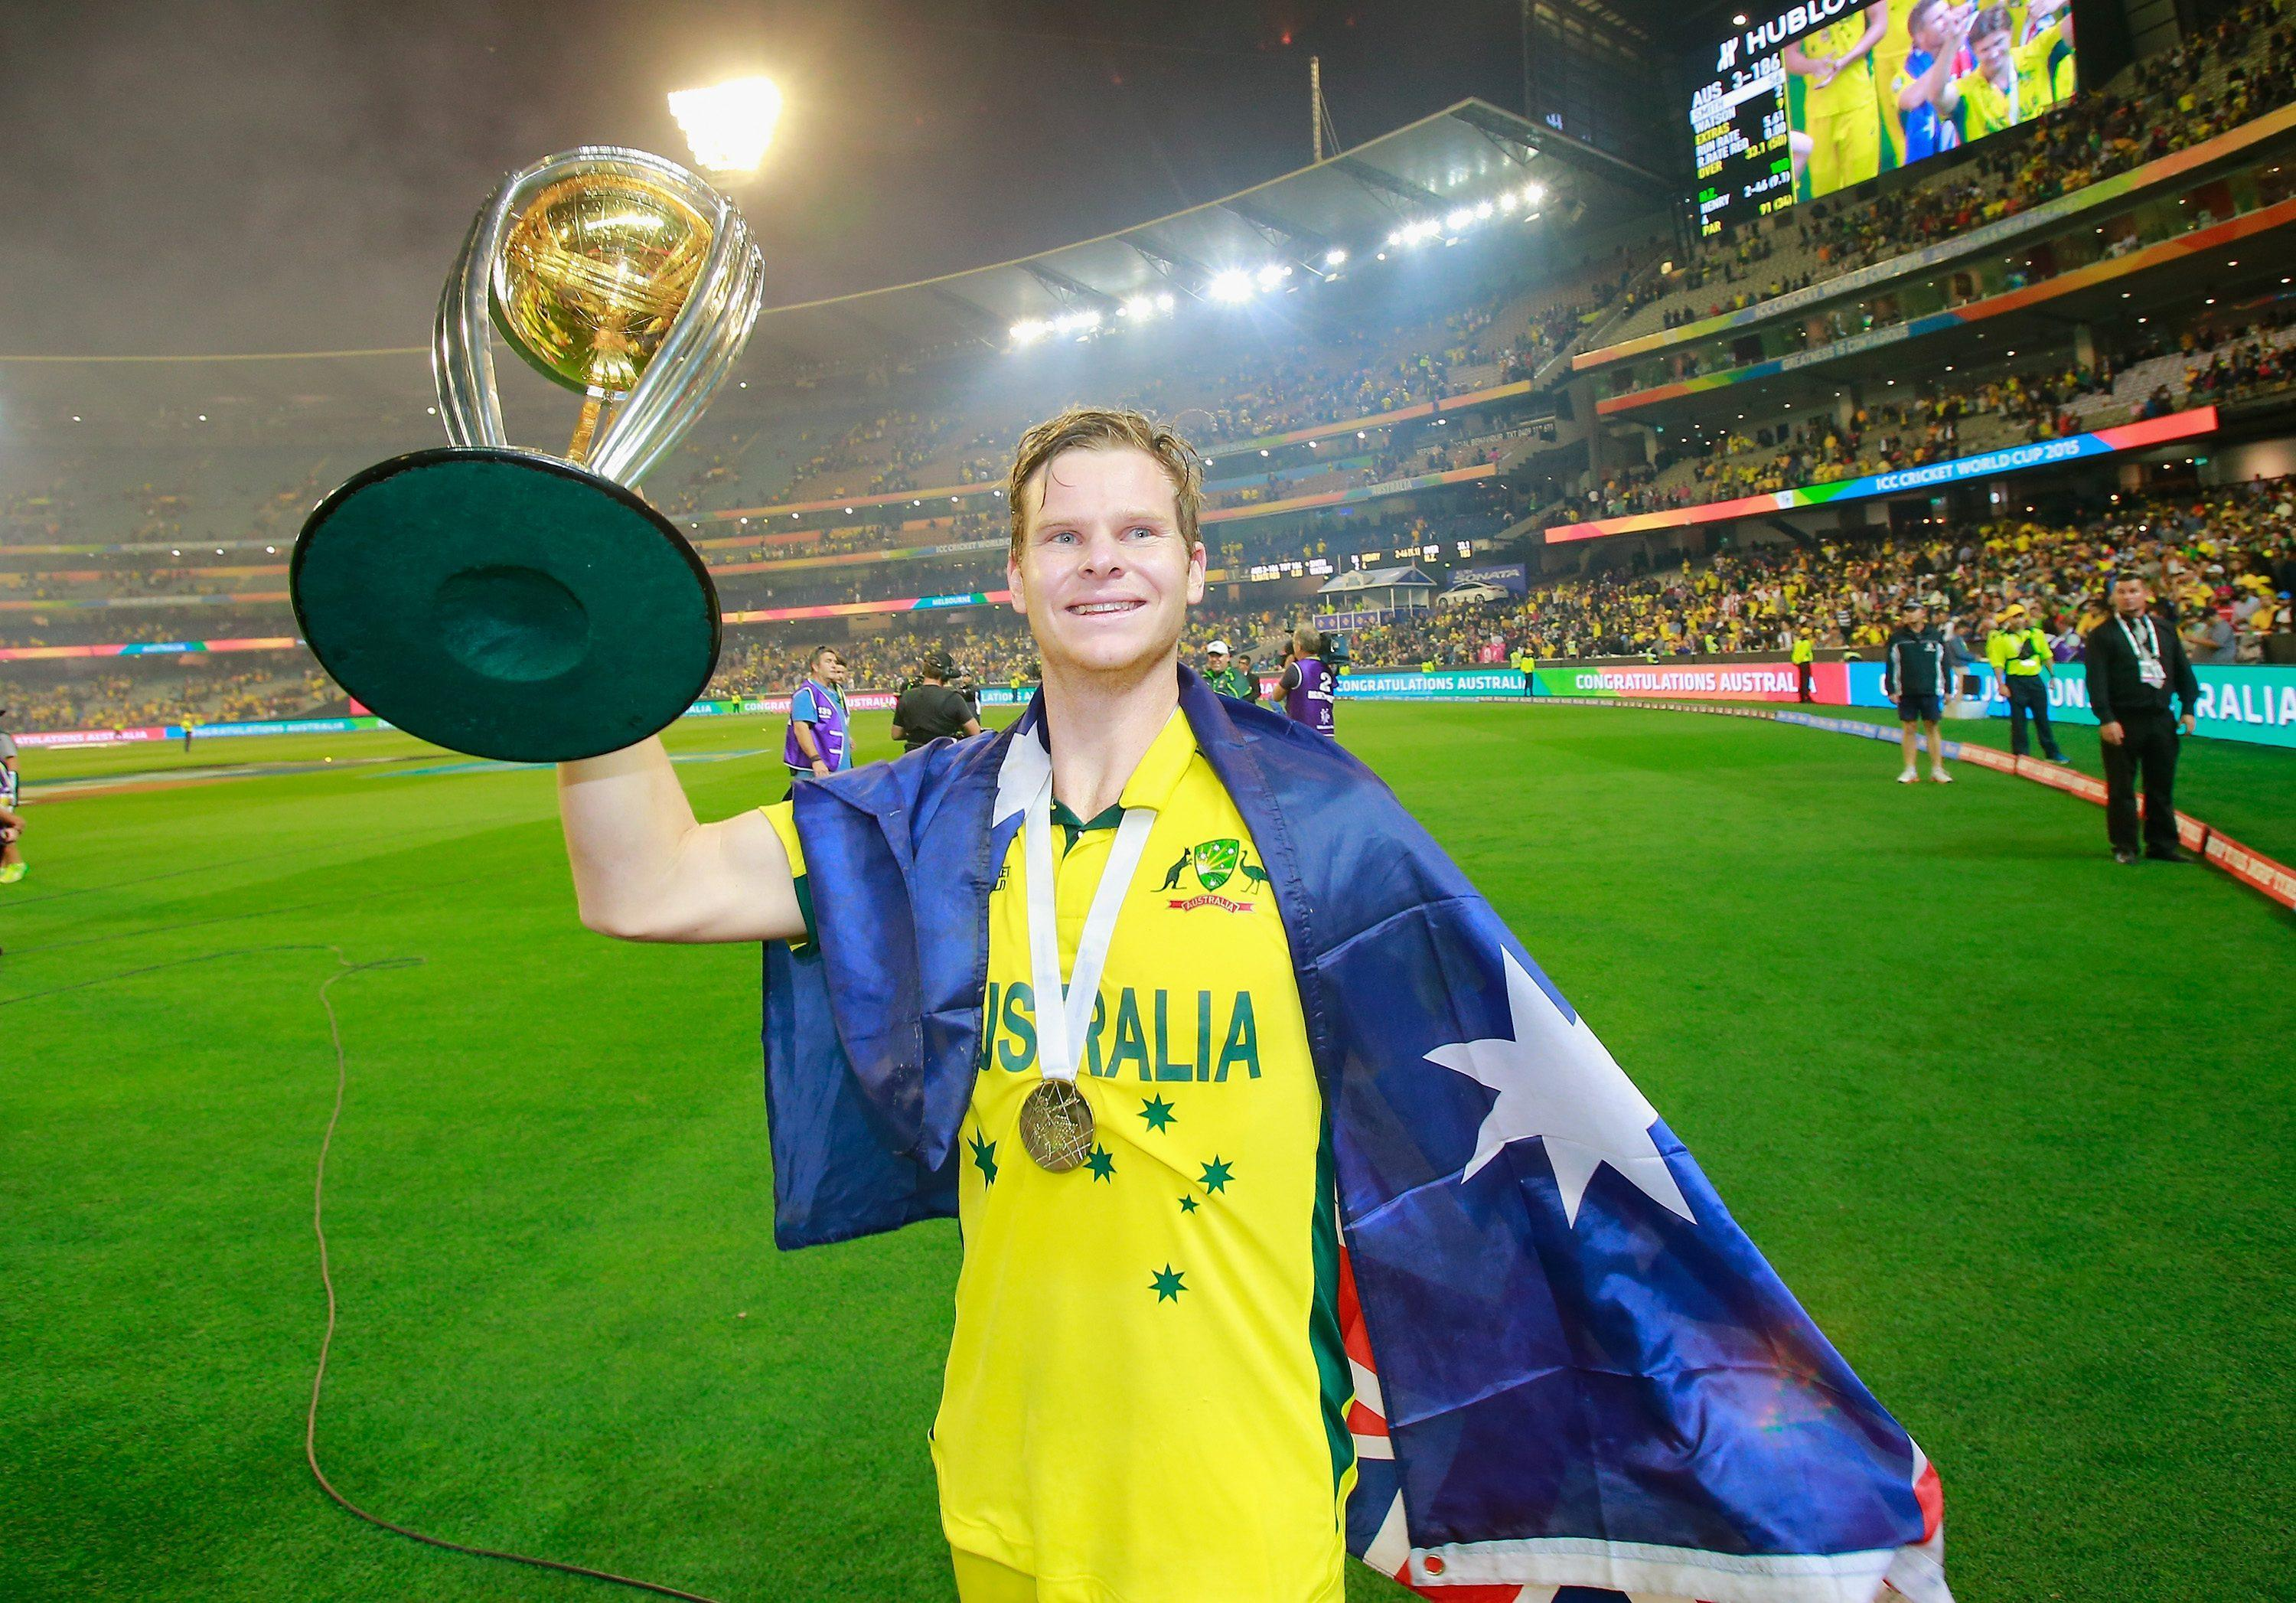 Steve Smith wins the Sir Garfield Sobers Trophy for ICC Cricketer